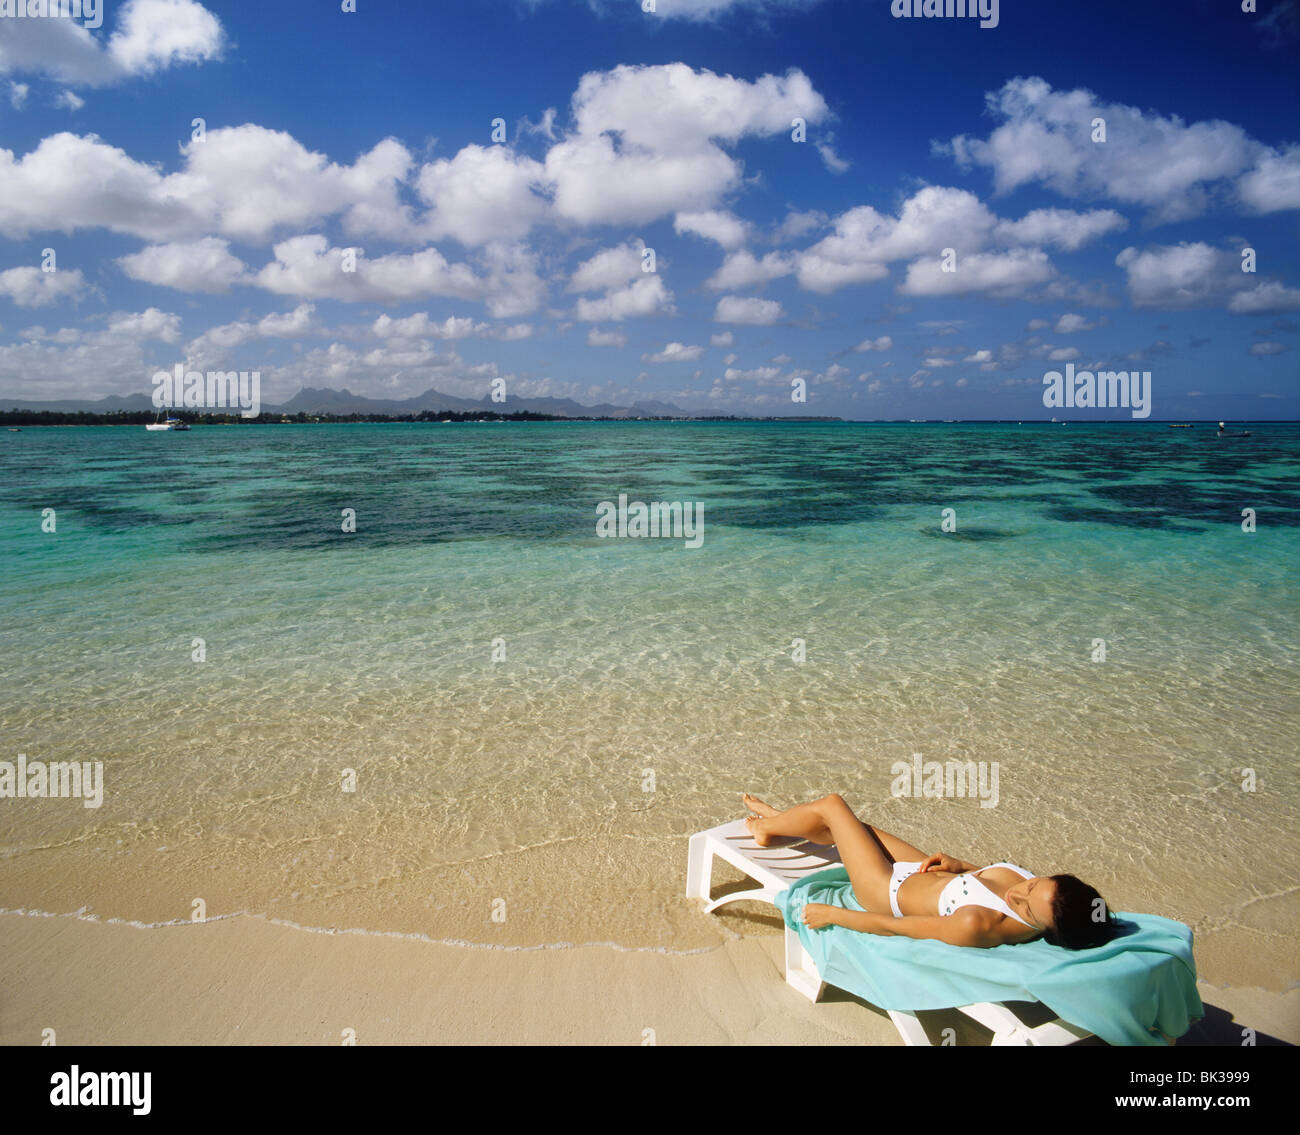 Beach at the Club Med at La Pointe Aux Canonniers, Mauritius, Indian Ocean, Asia - Stock Image